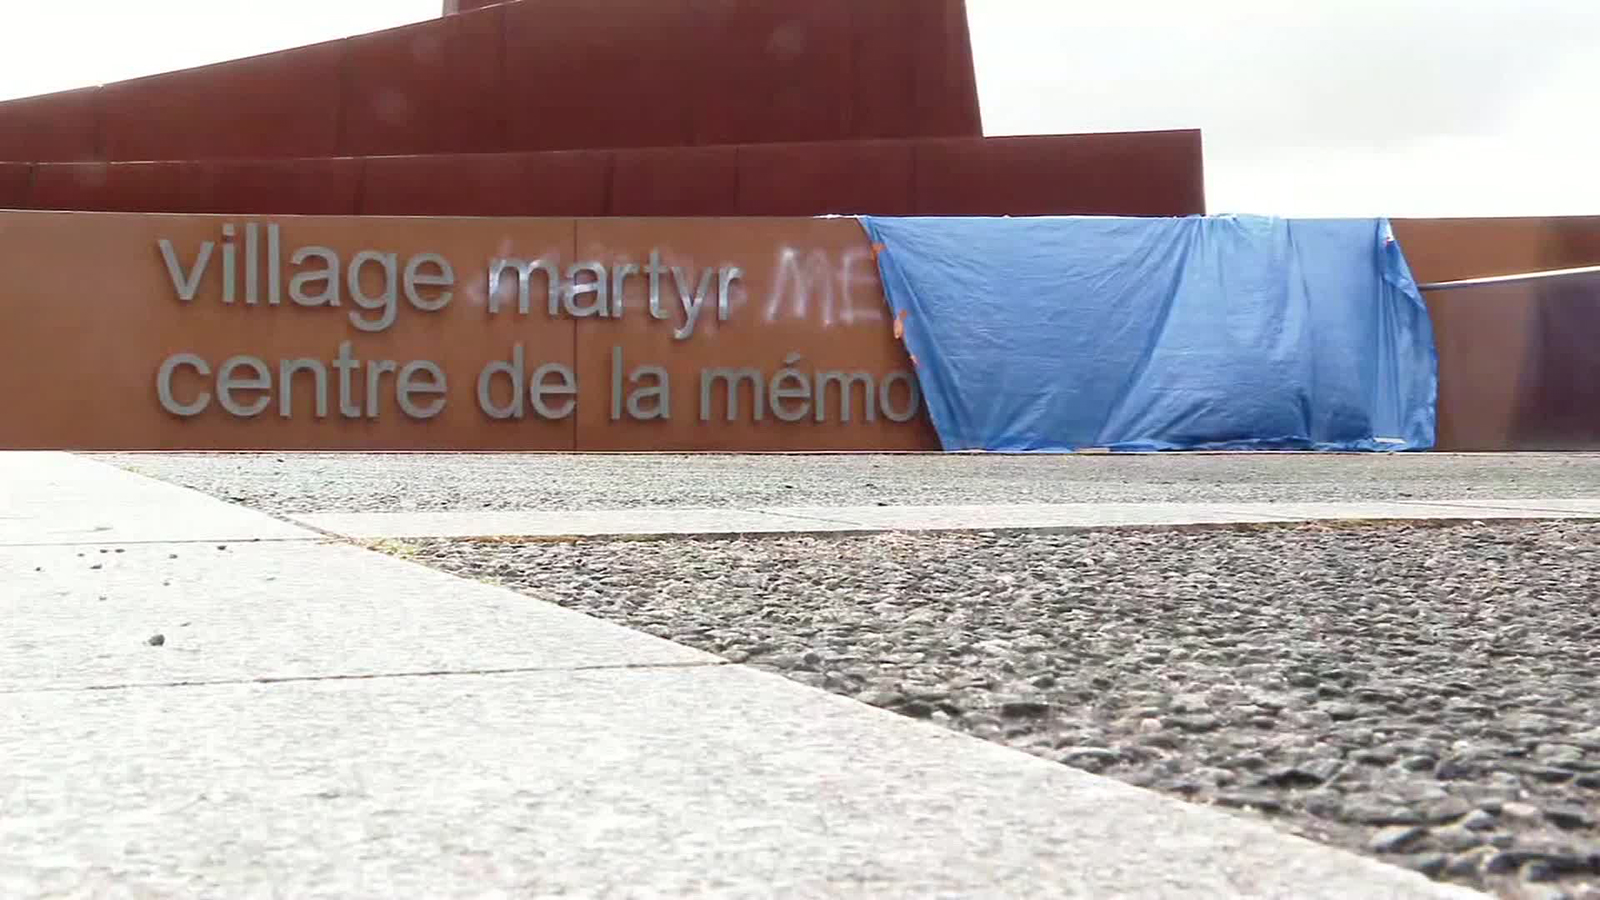 Graffiti denying the Holocaust was found at a massacre site in France